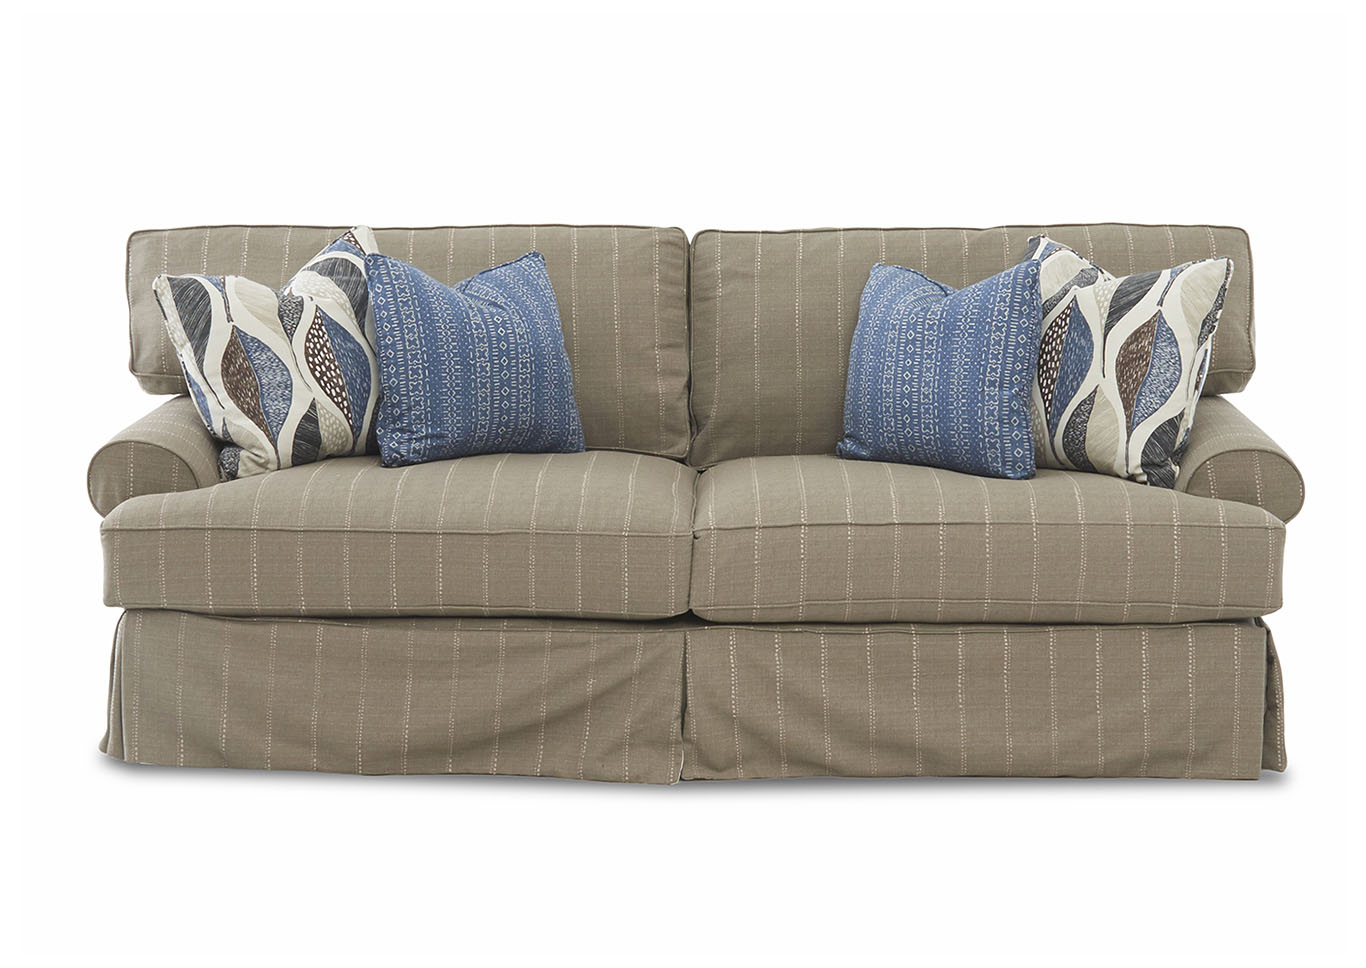 Lahoya Brown Striped Stationary Fabric Sofa,Klaussner Home Furnishings